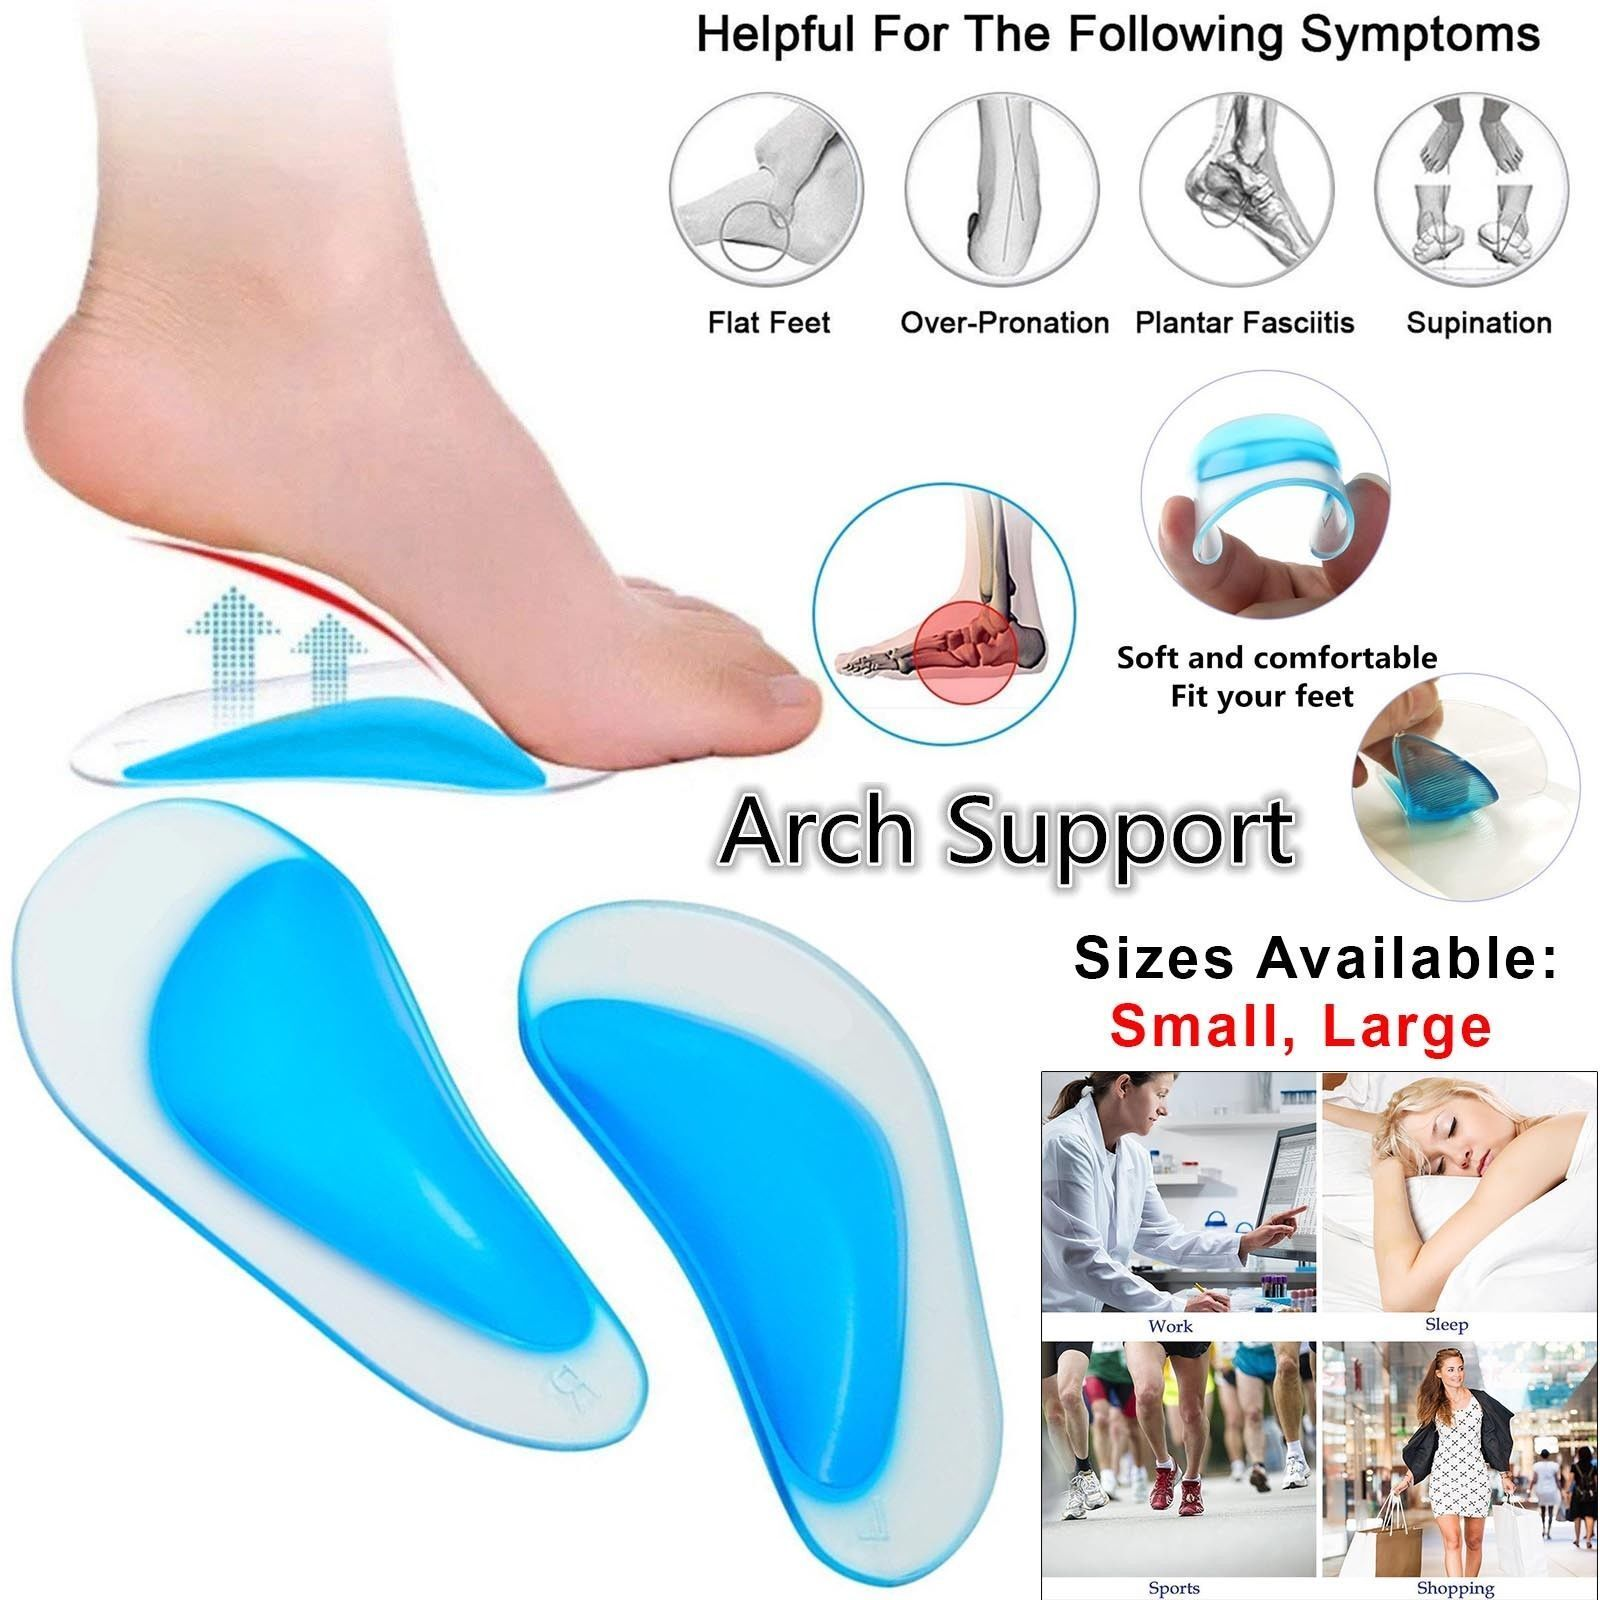 Details about Orthopedic Gel Arch Support Flat Feet Foot Fallen Plantar Fasciitis Insole Heel